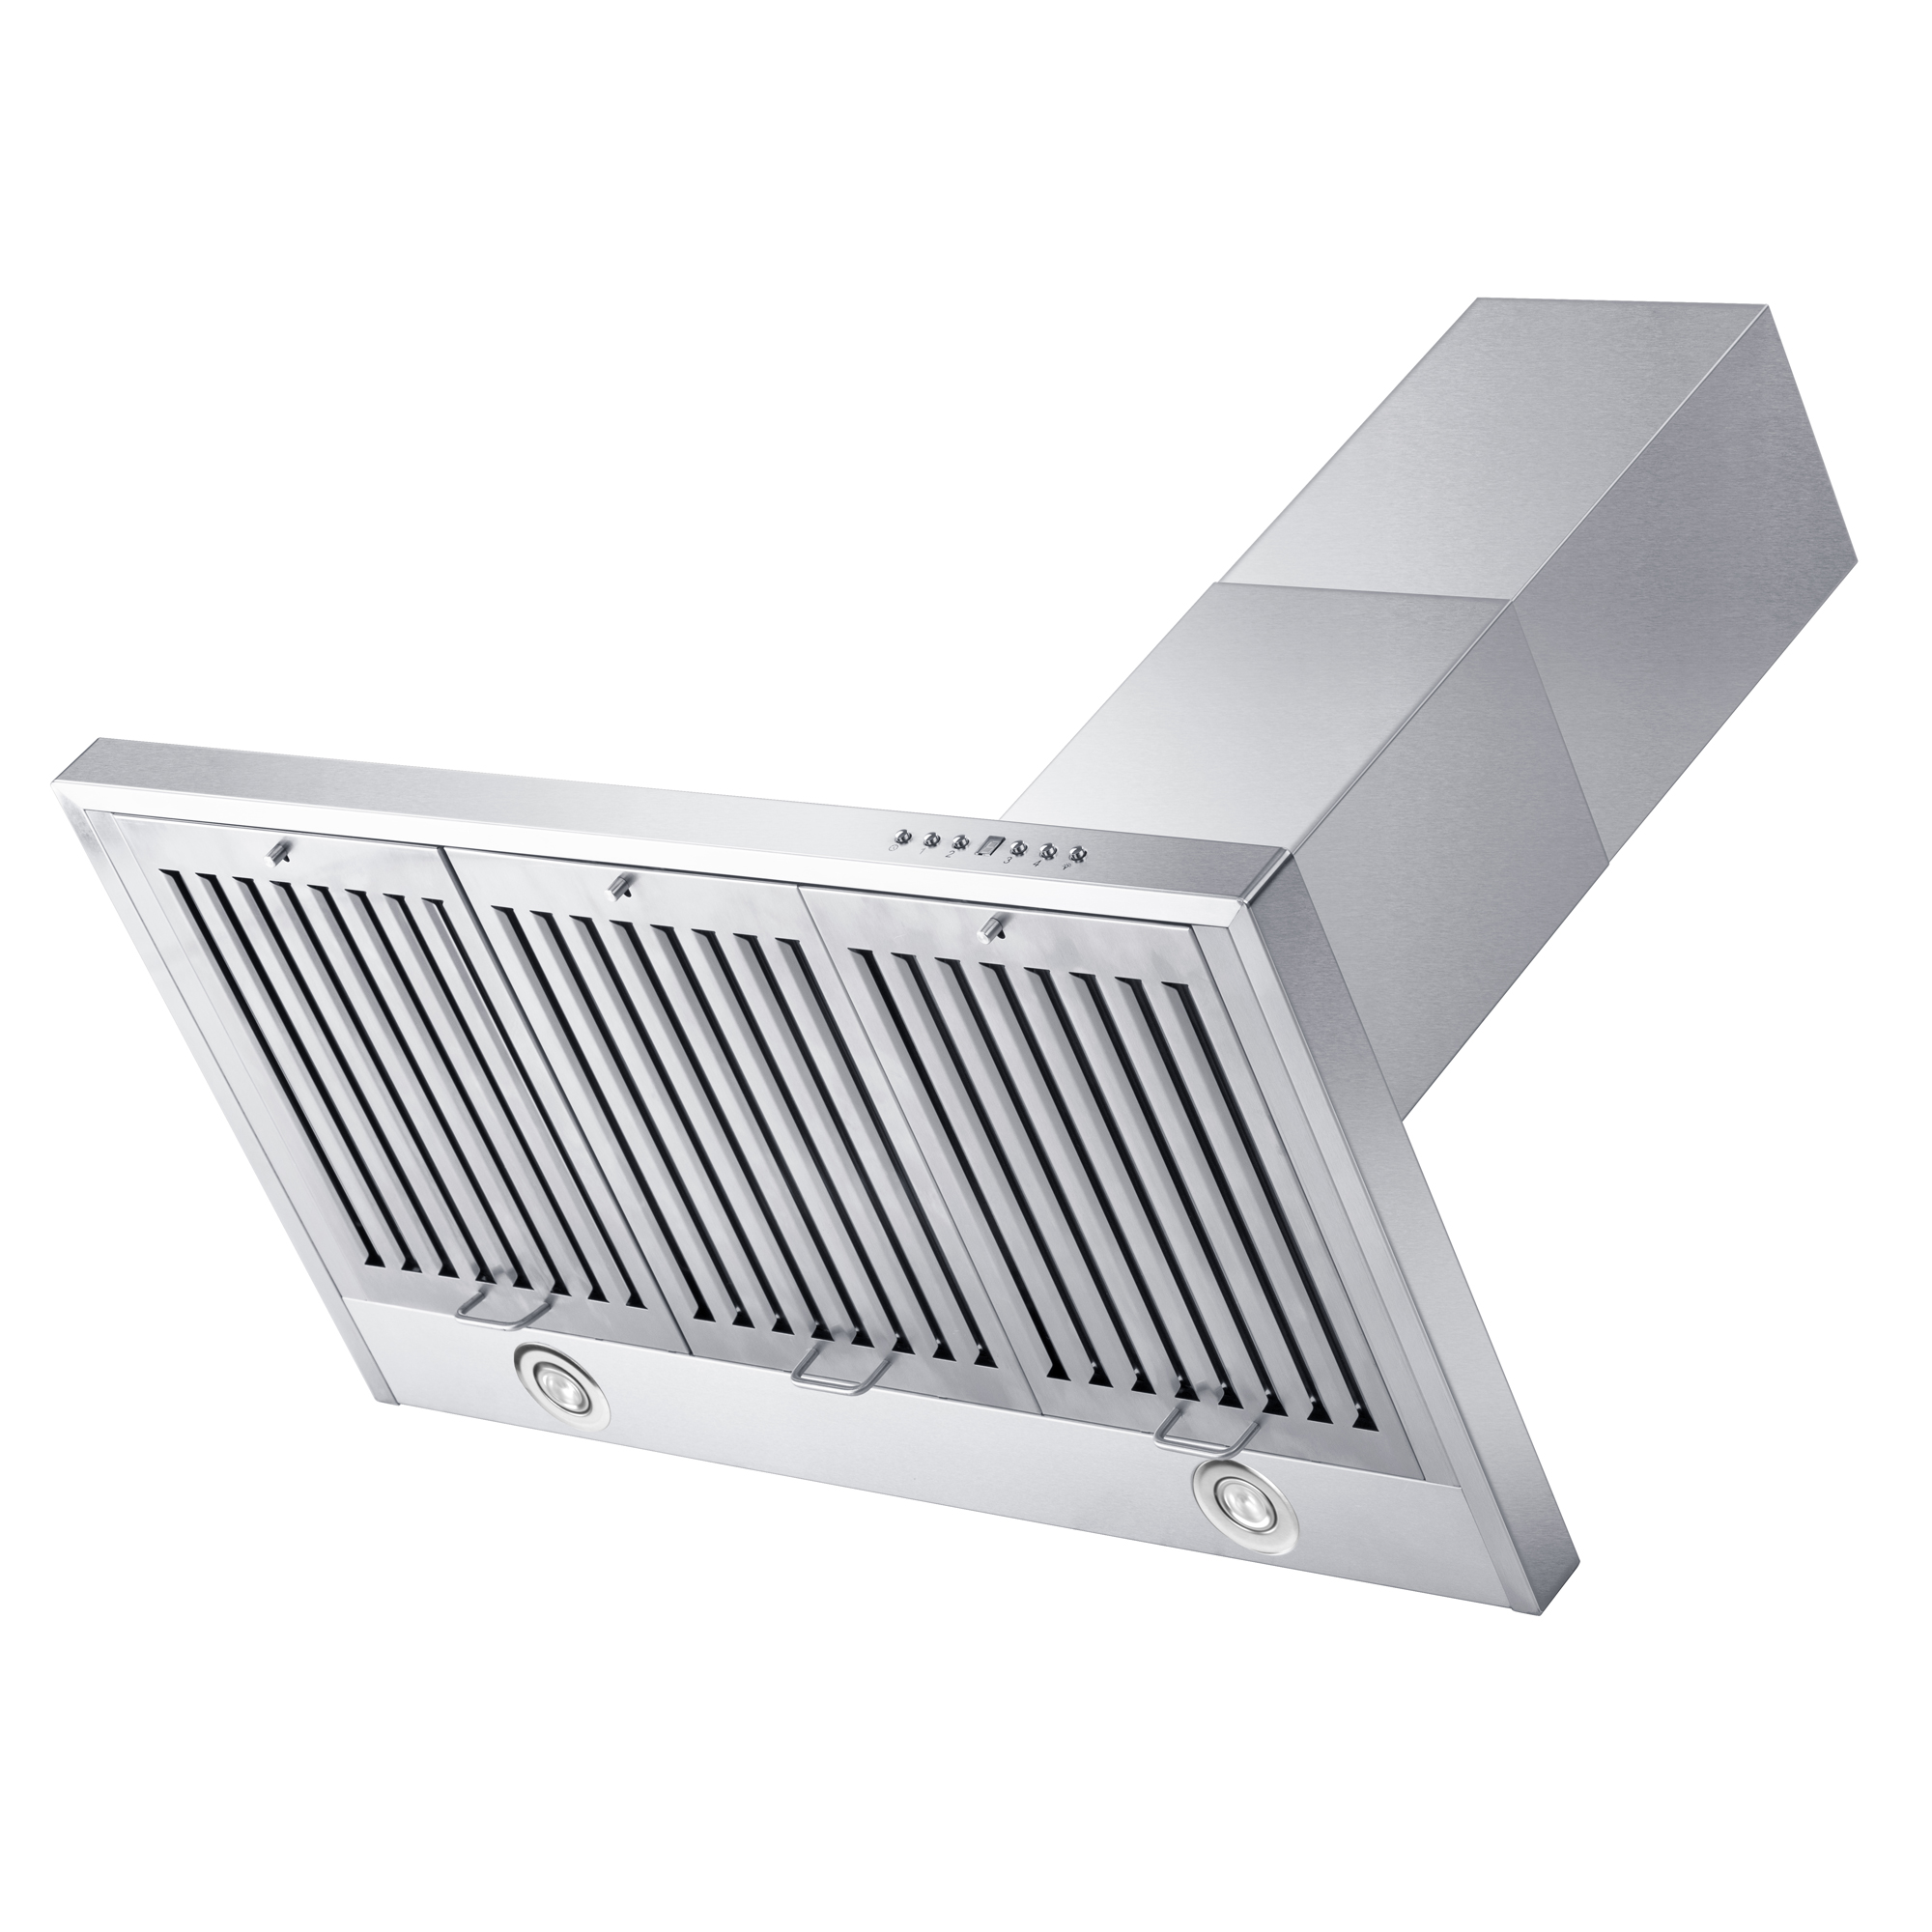 zline-stainless-steel-wall-mounted-range-hood-KB-side-under-new.jpg